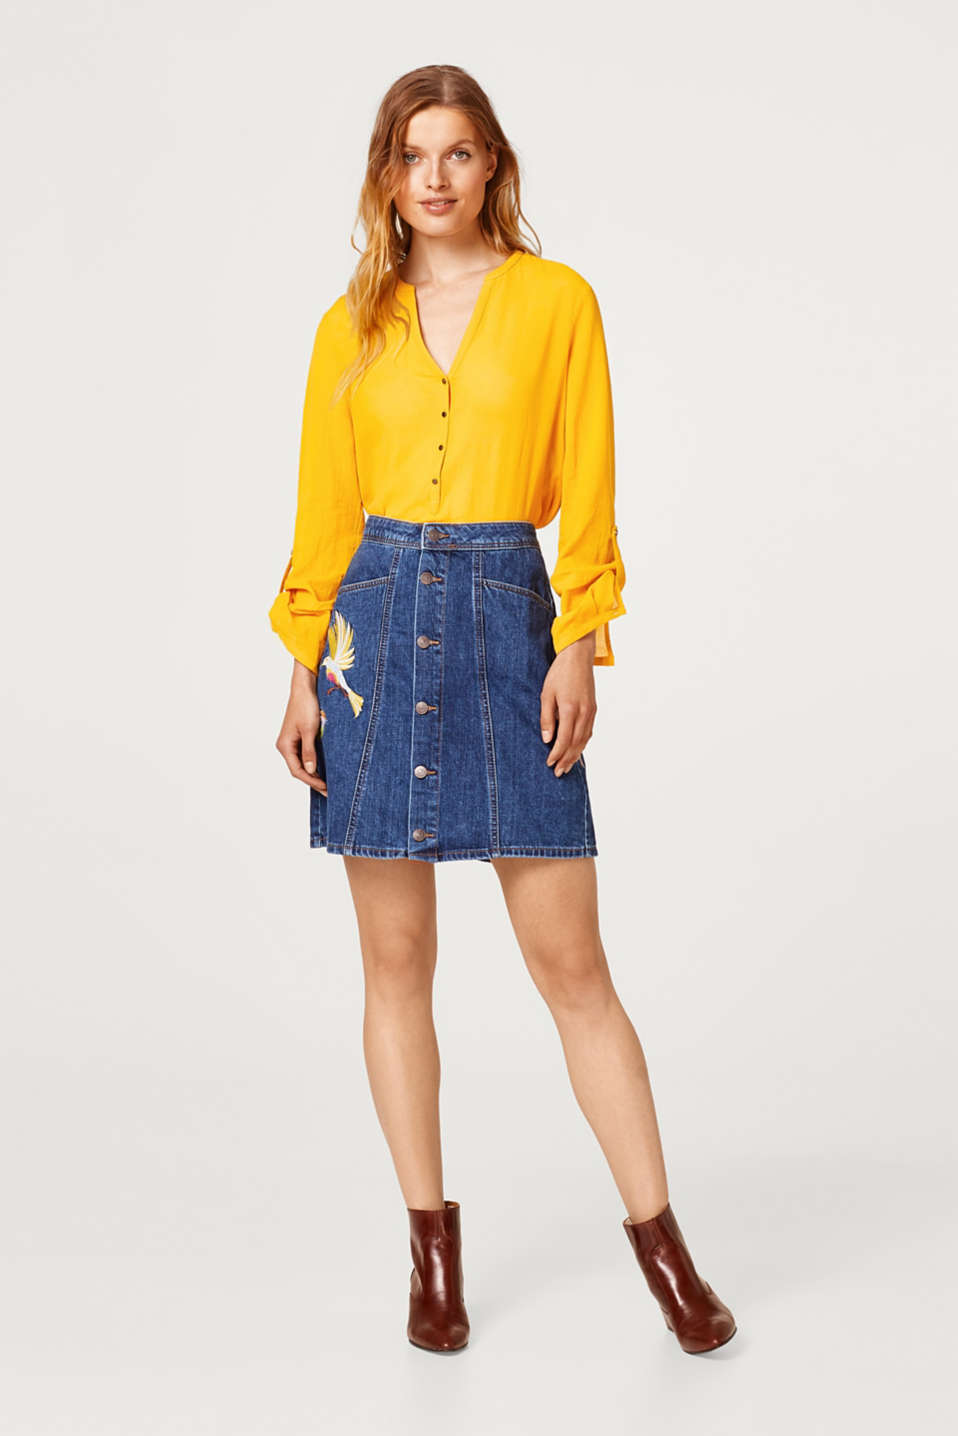 Embroidered denim skirt with a button placket